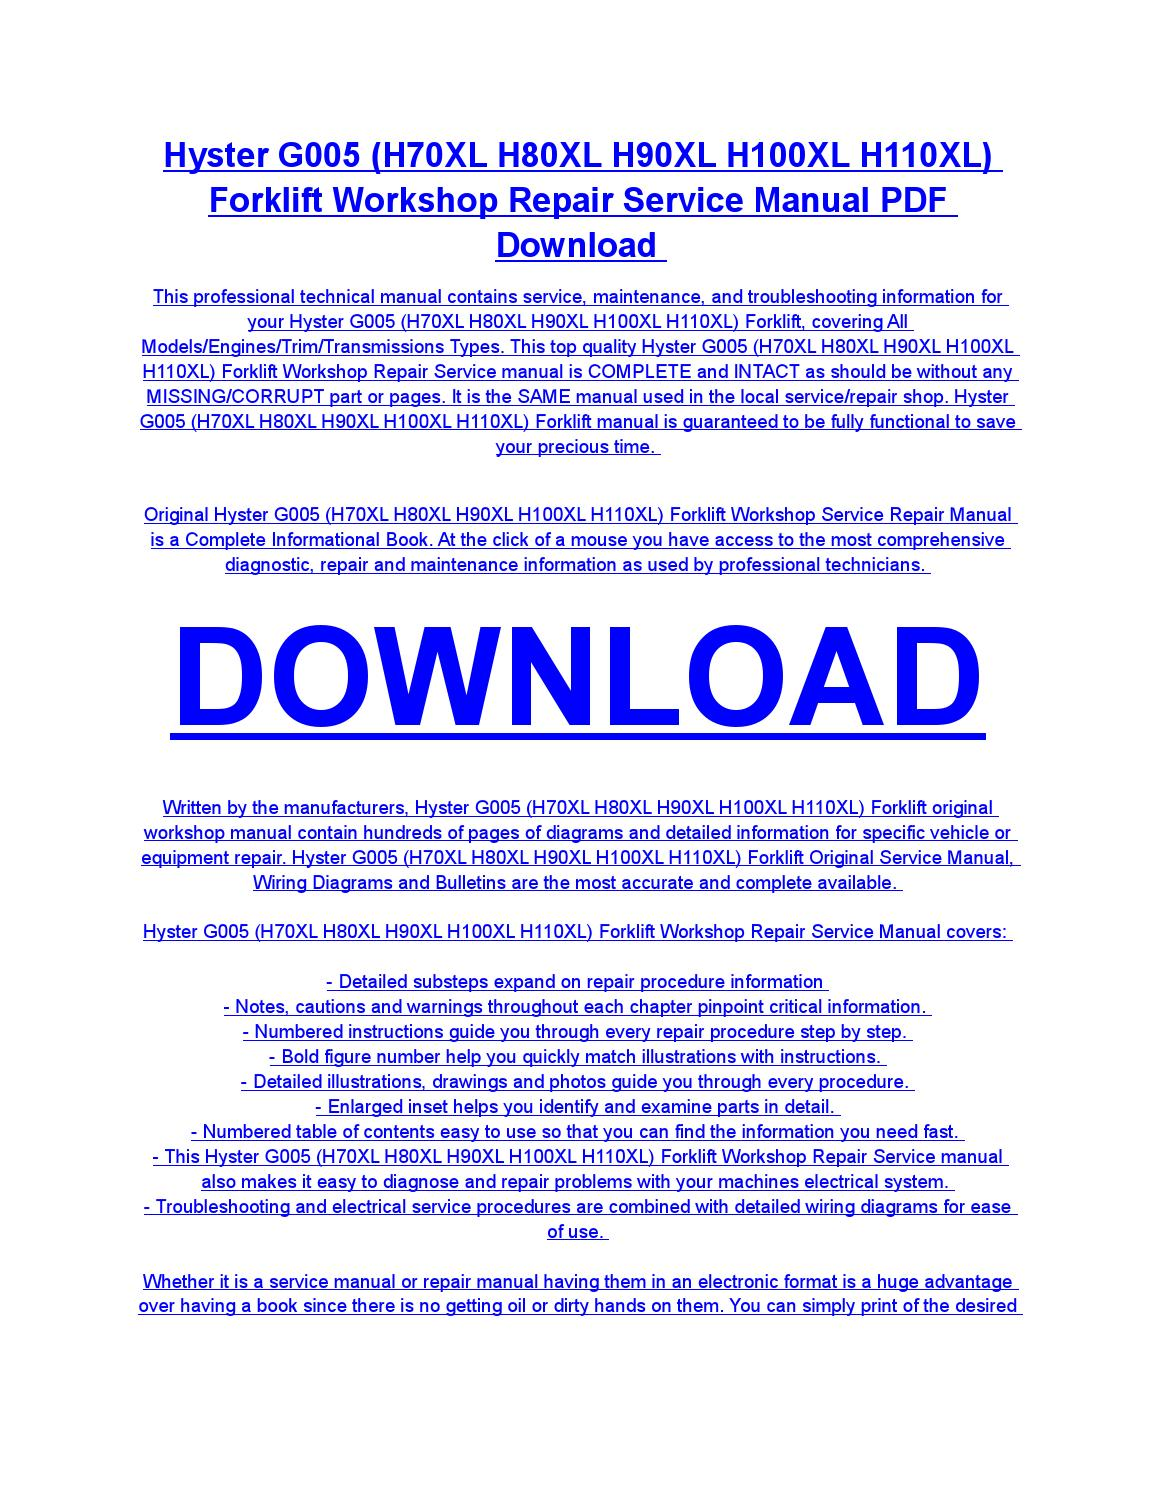 hight resolution of hyster g005 h70xl h80xl h90xl h100xl h110xl forklift service repair workshop manual download by diaz rondon issuu